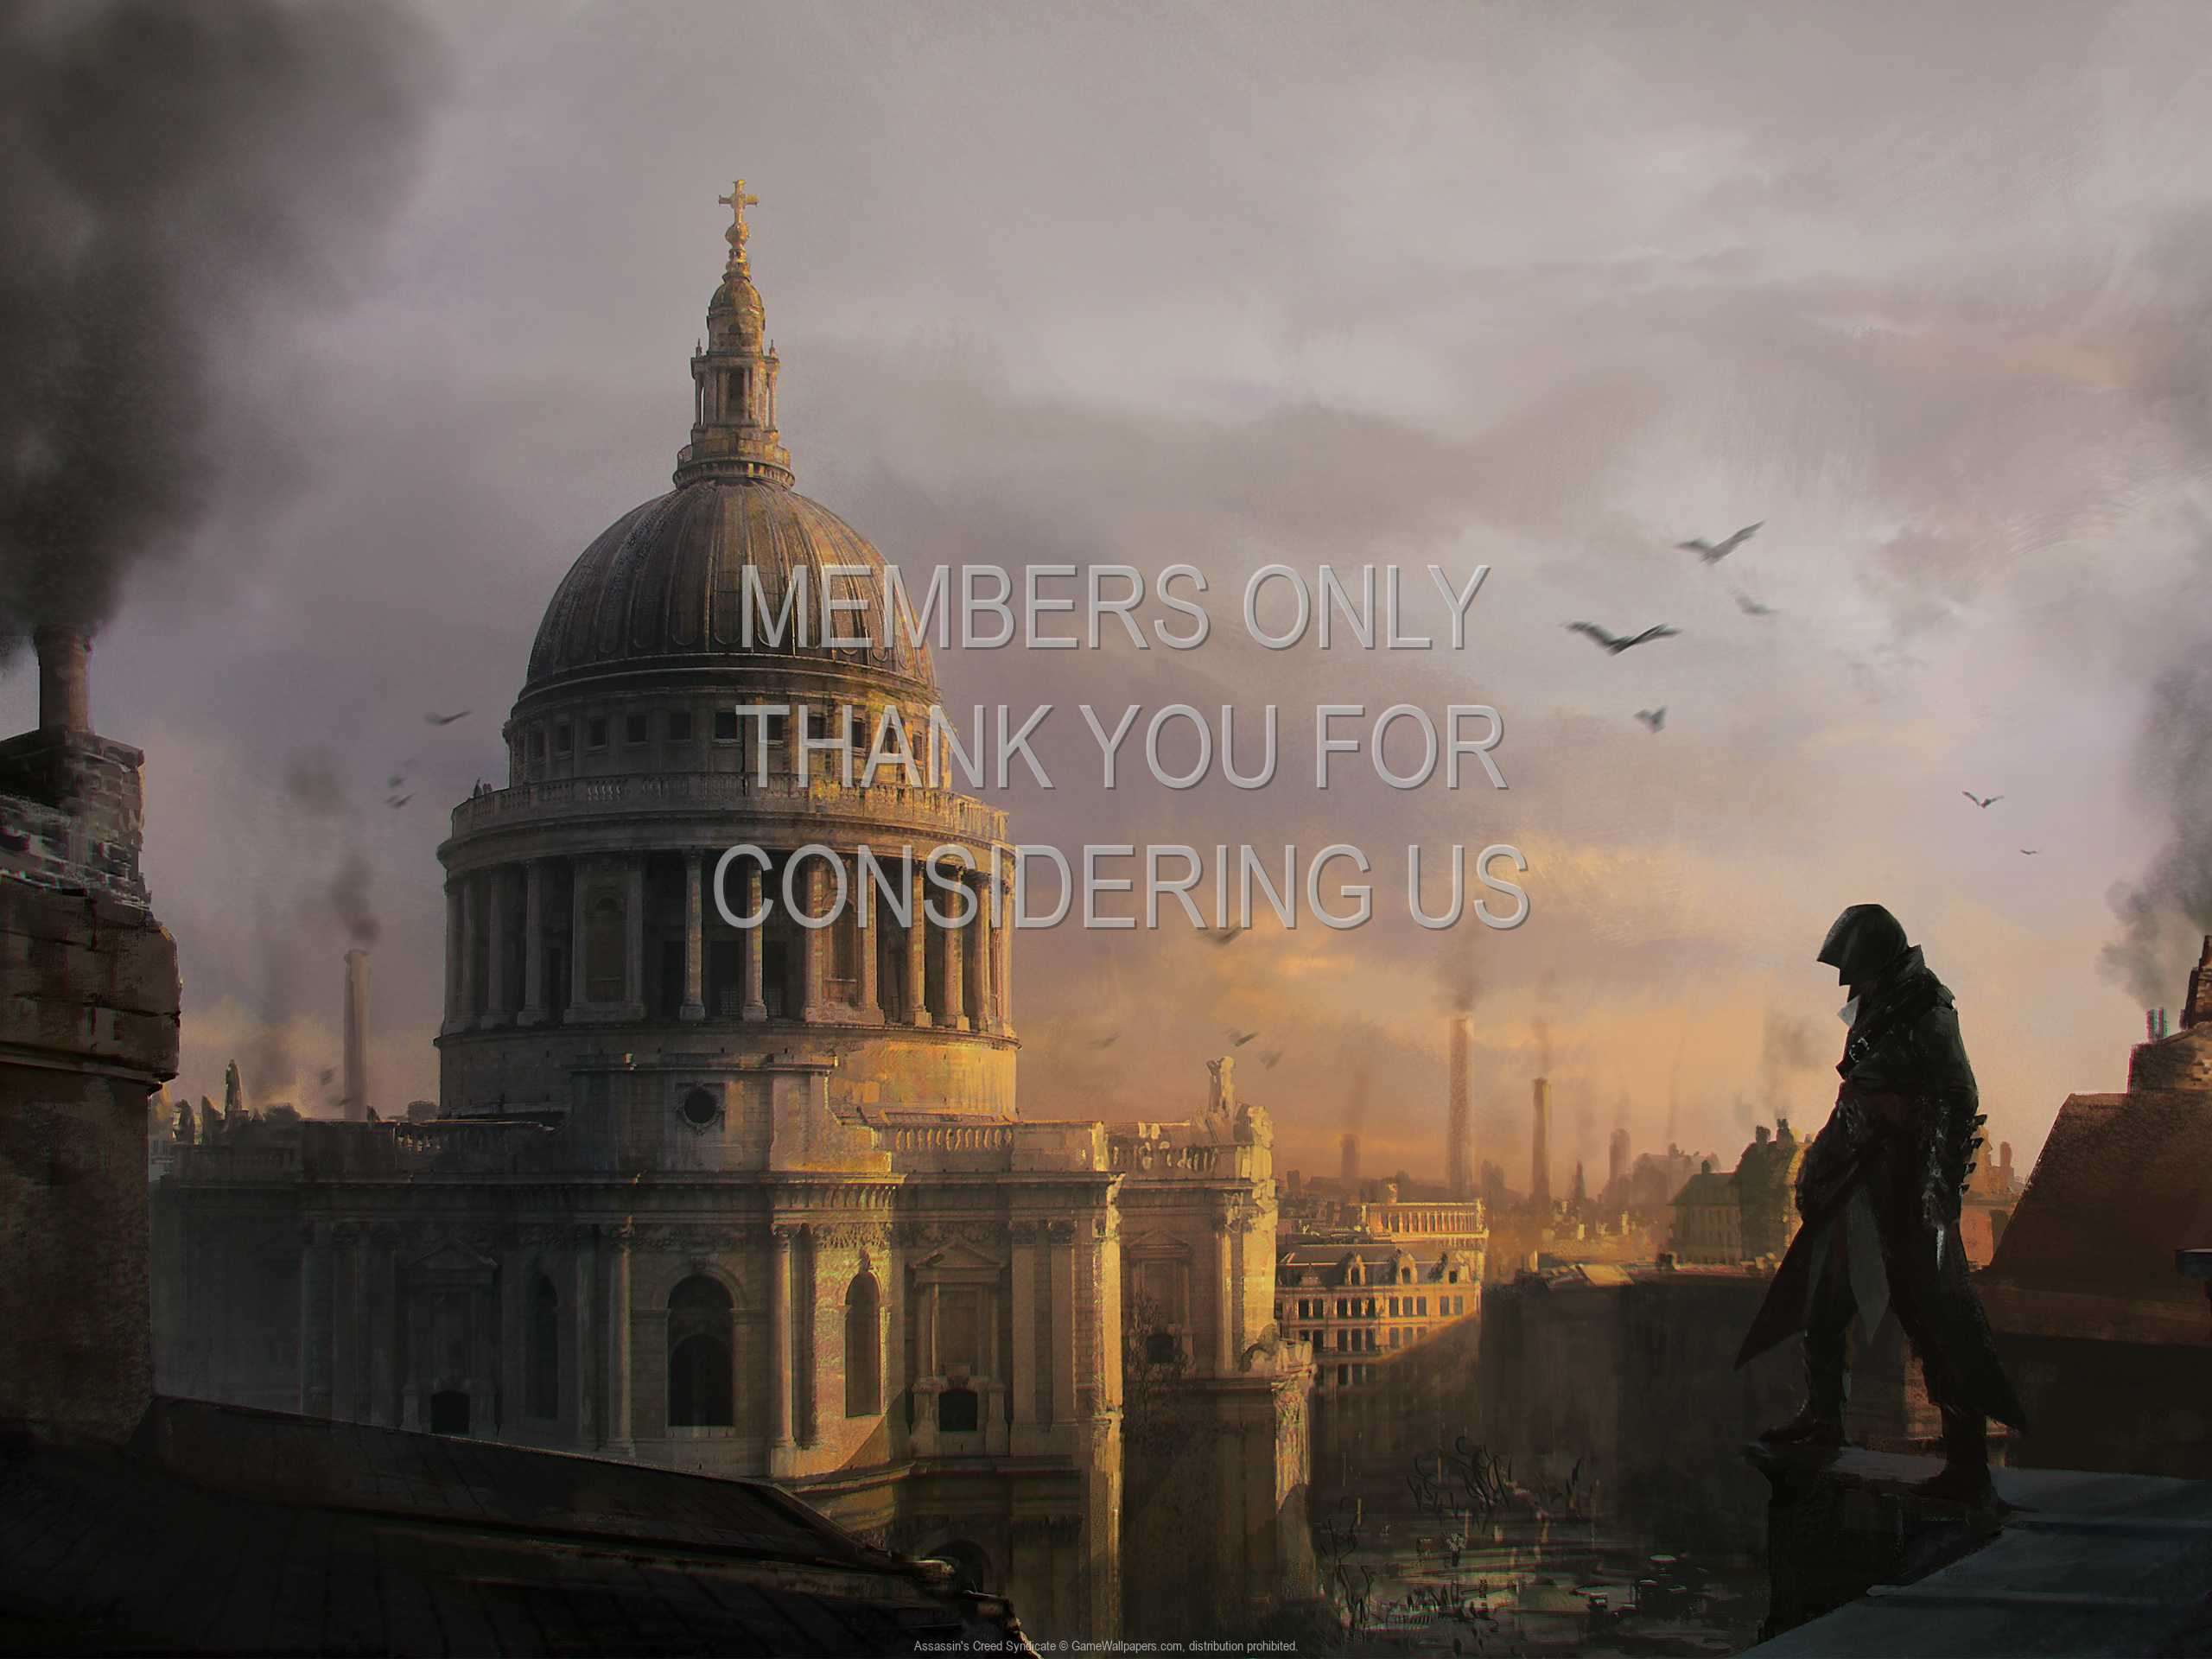 Assassin's Creed: Syndicate 1080p Horizontal Mobile wallpaper or background 13